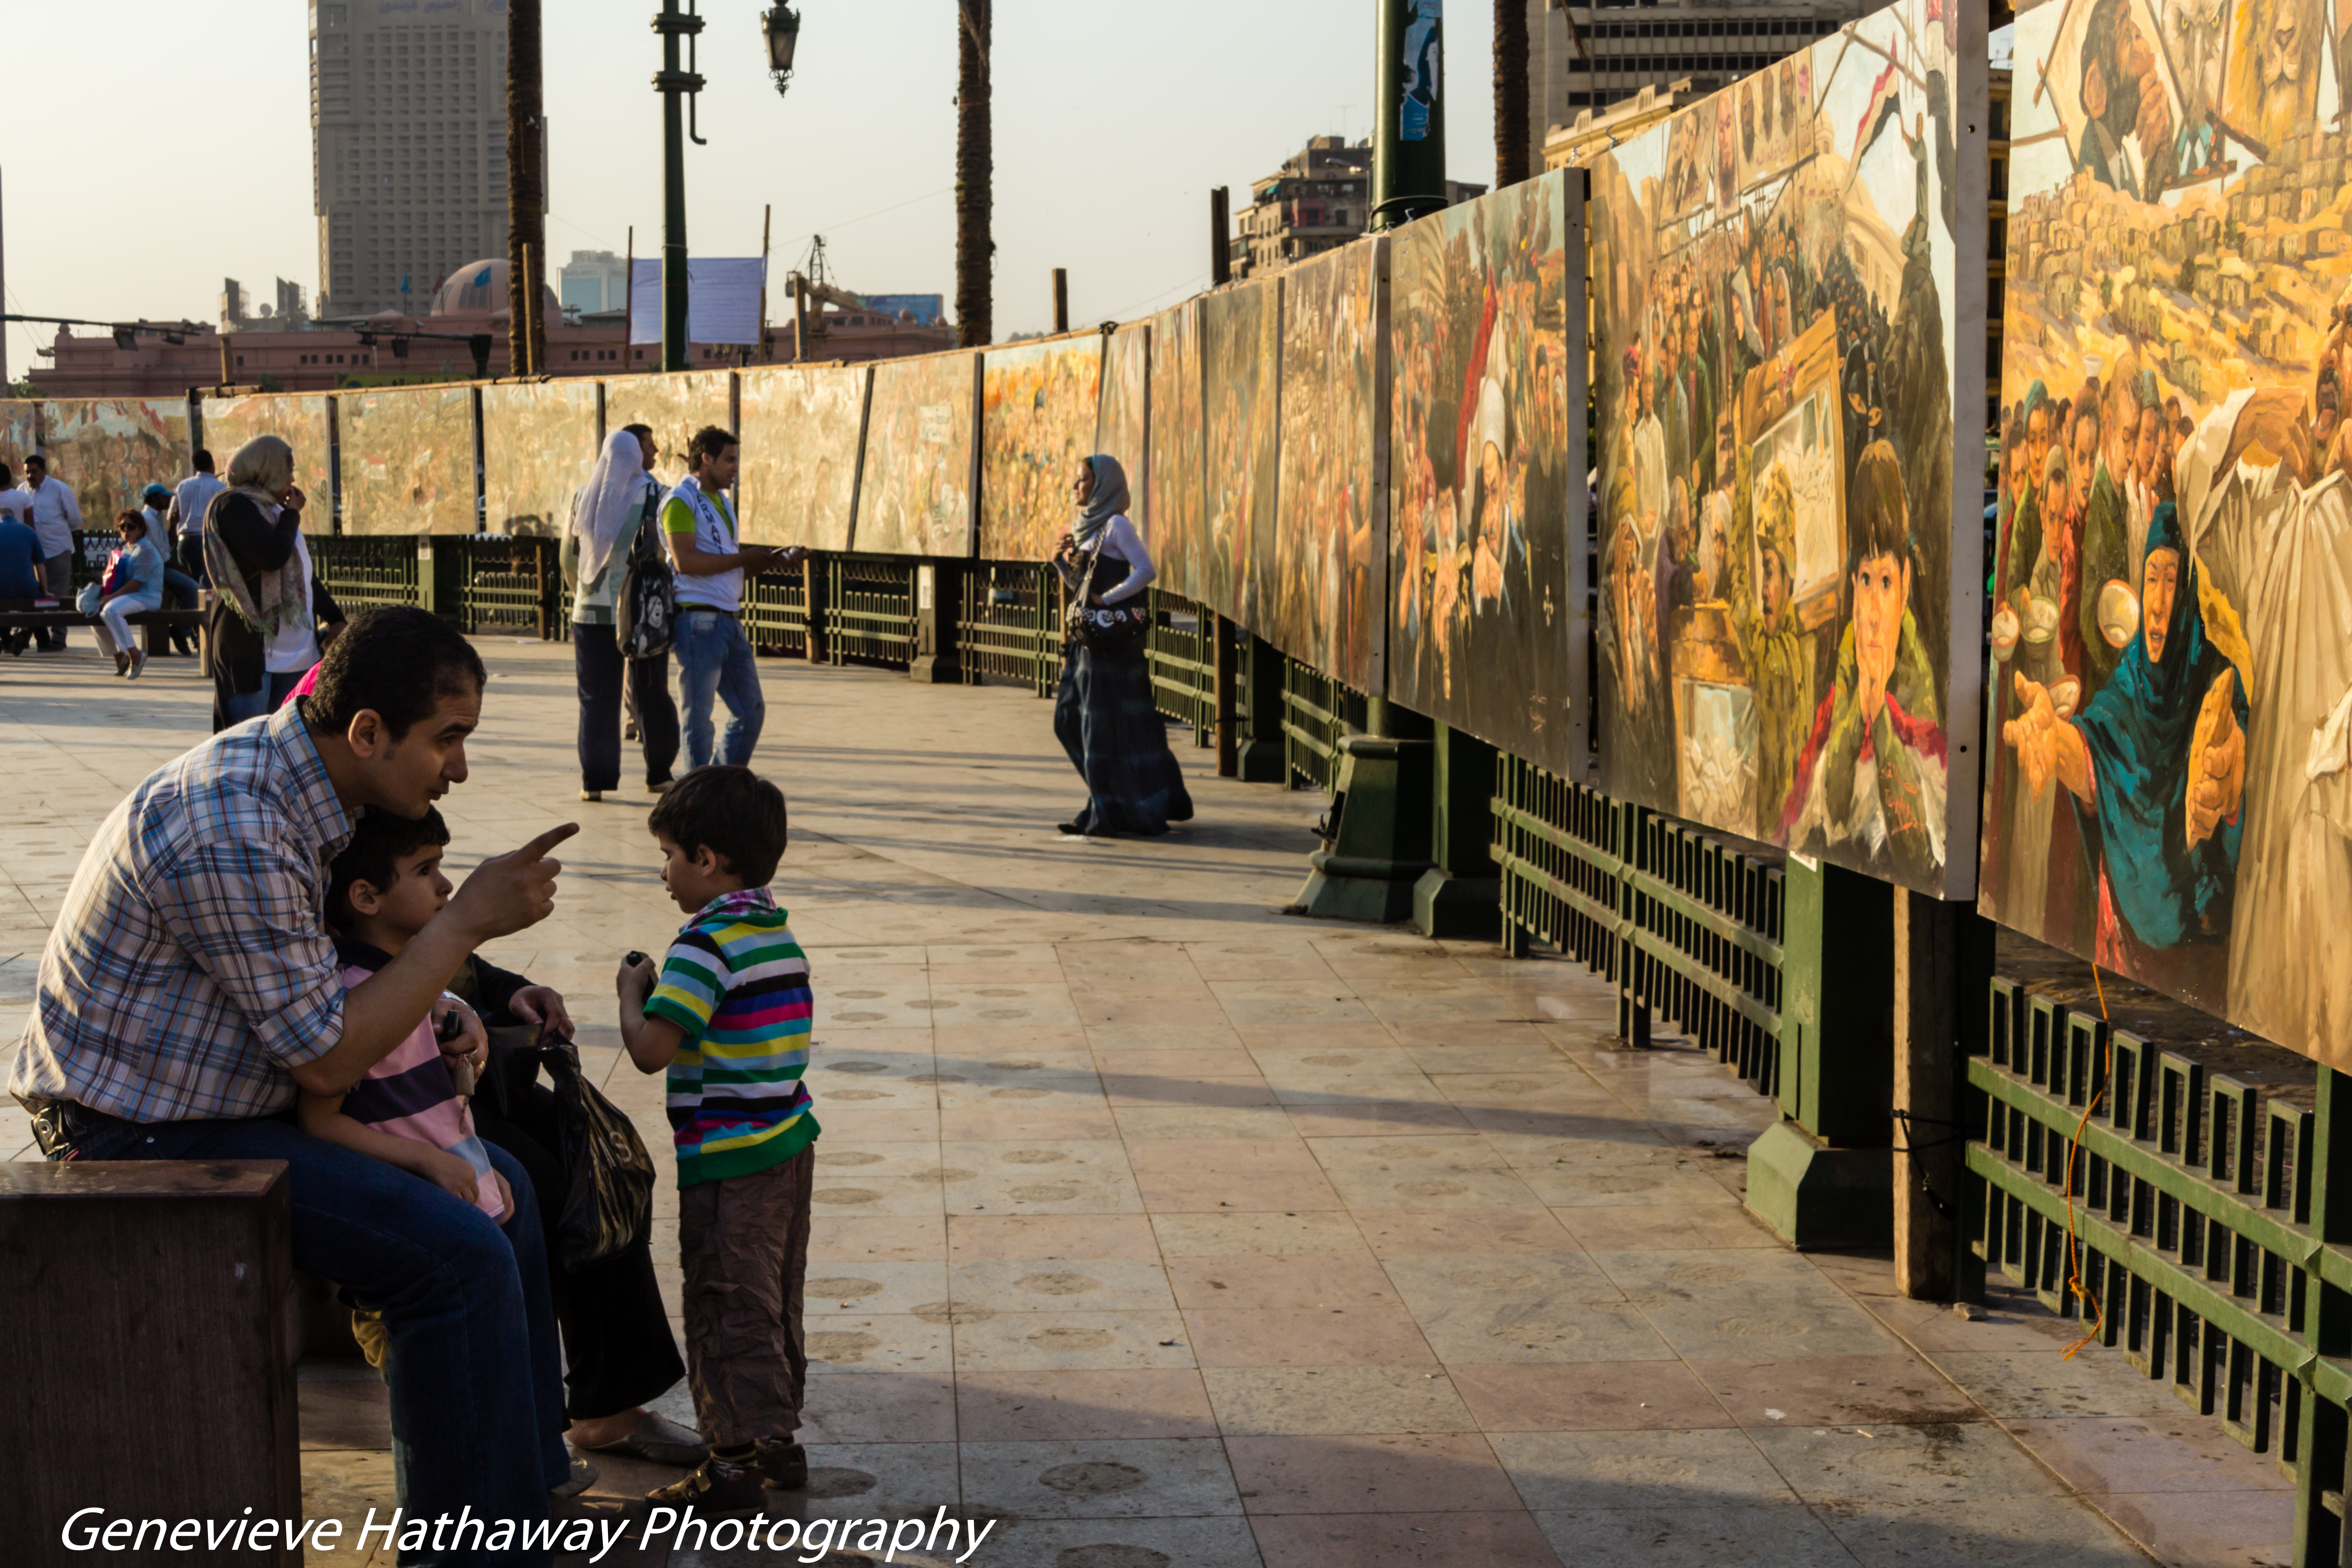 Egyptian families admire murals in public gallery